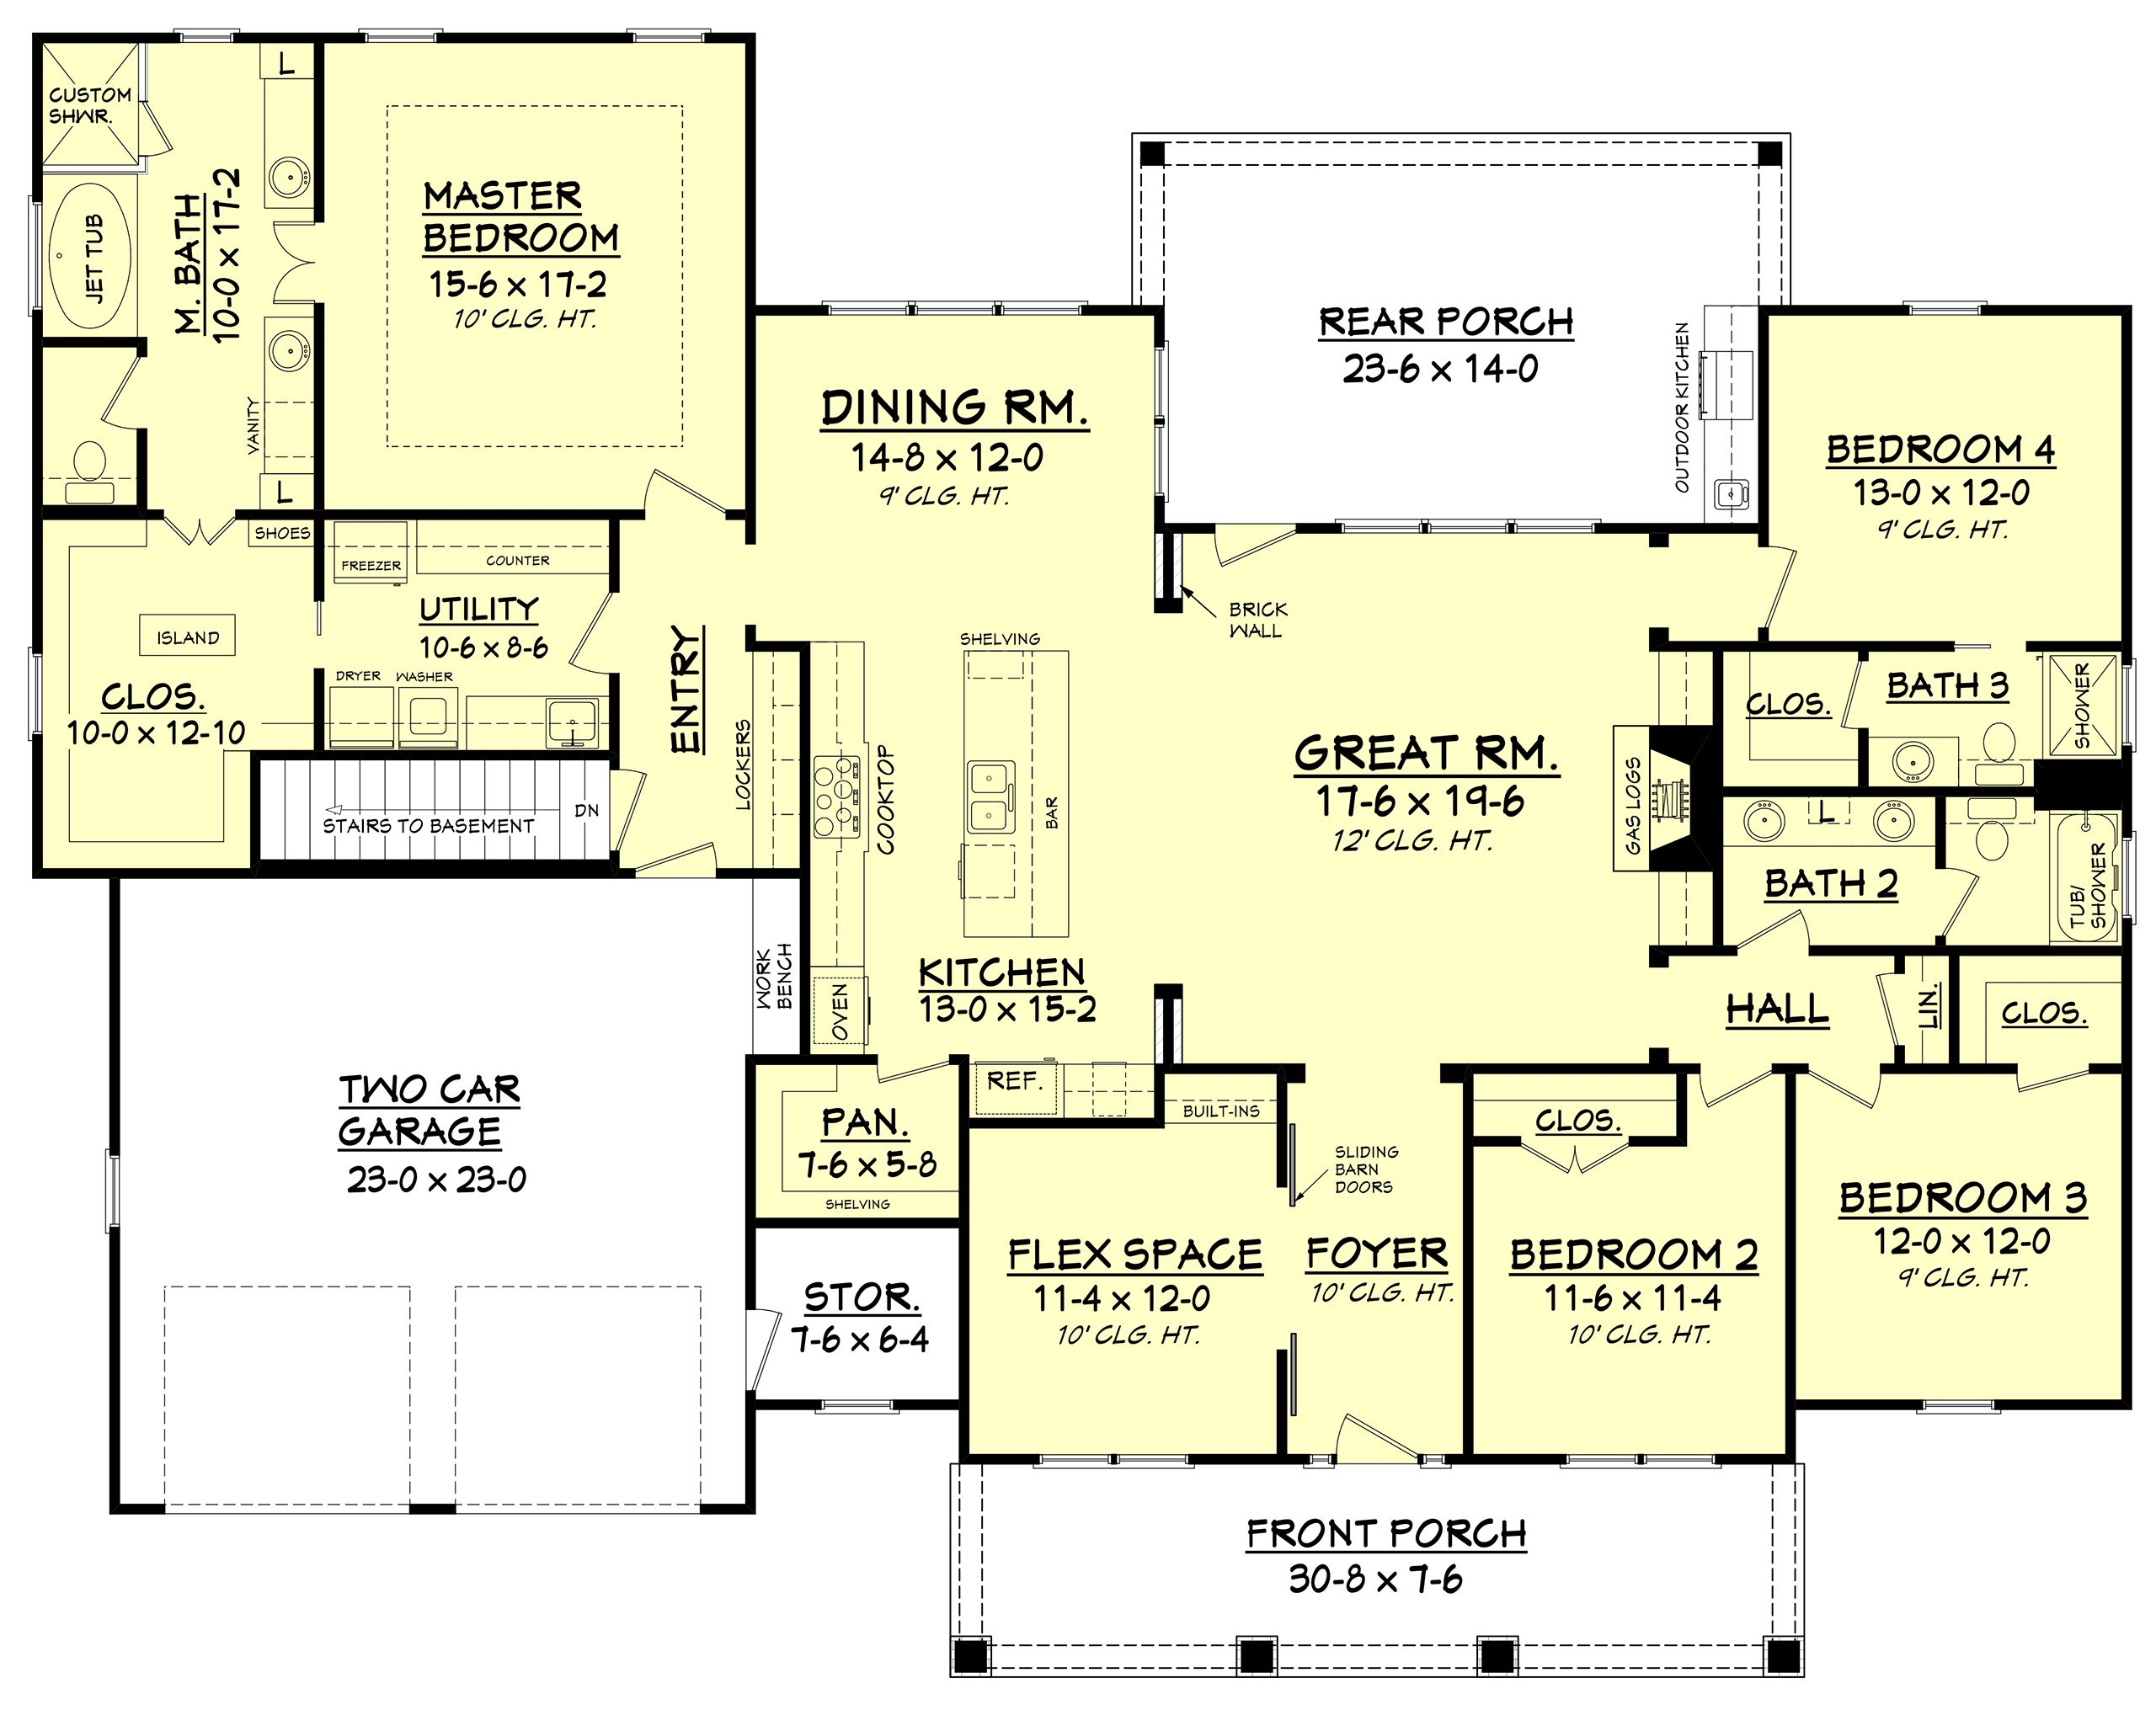 Craftsman style house plan 4 beds 3 baths 2639 sq ft for House plans 3 bedroom 1 bathroom